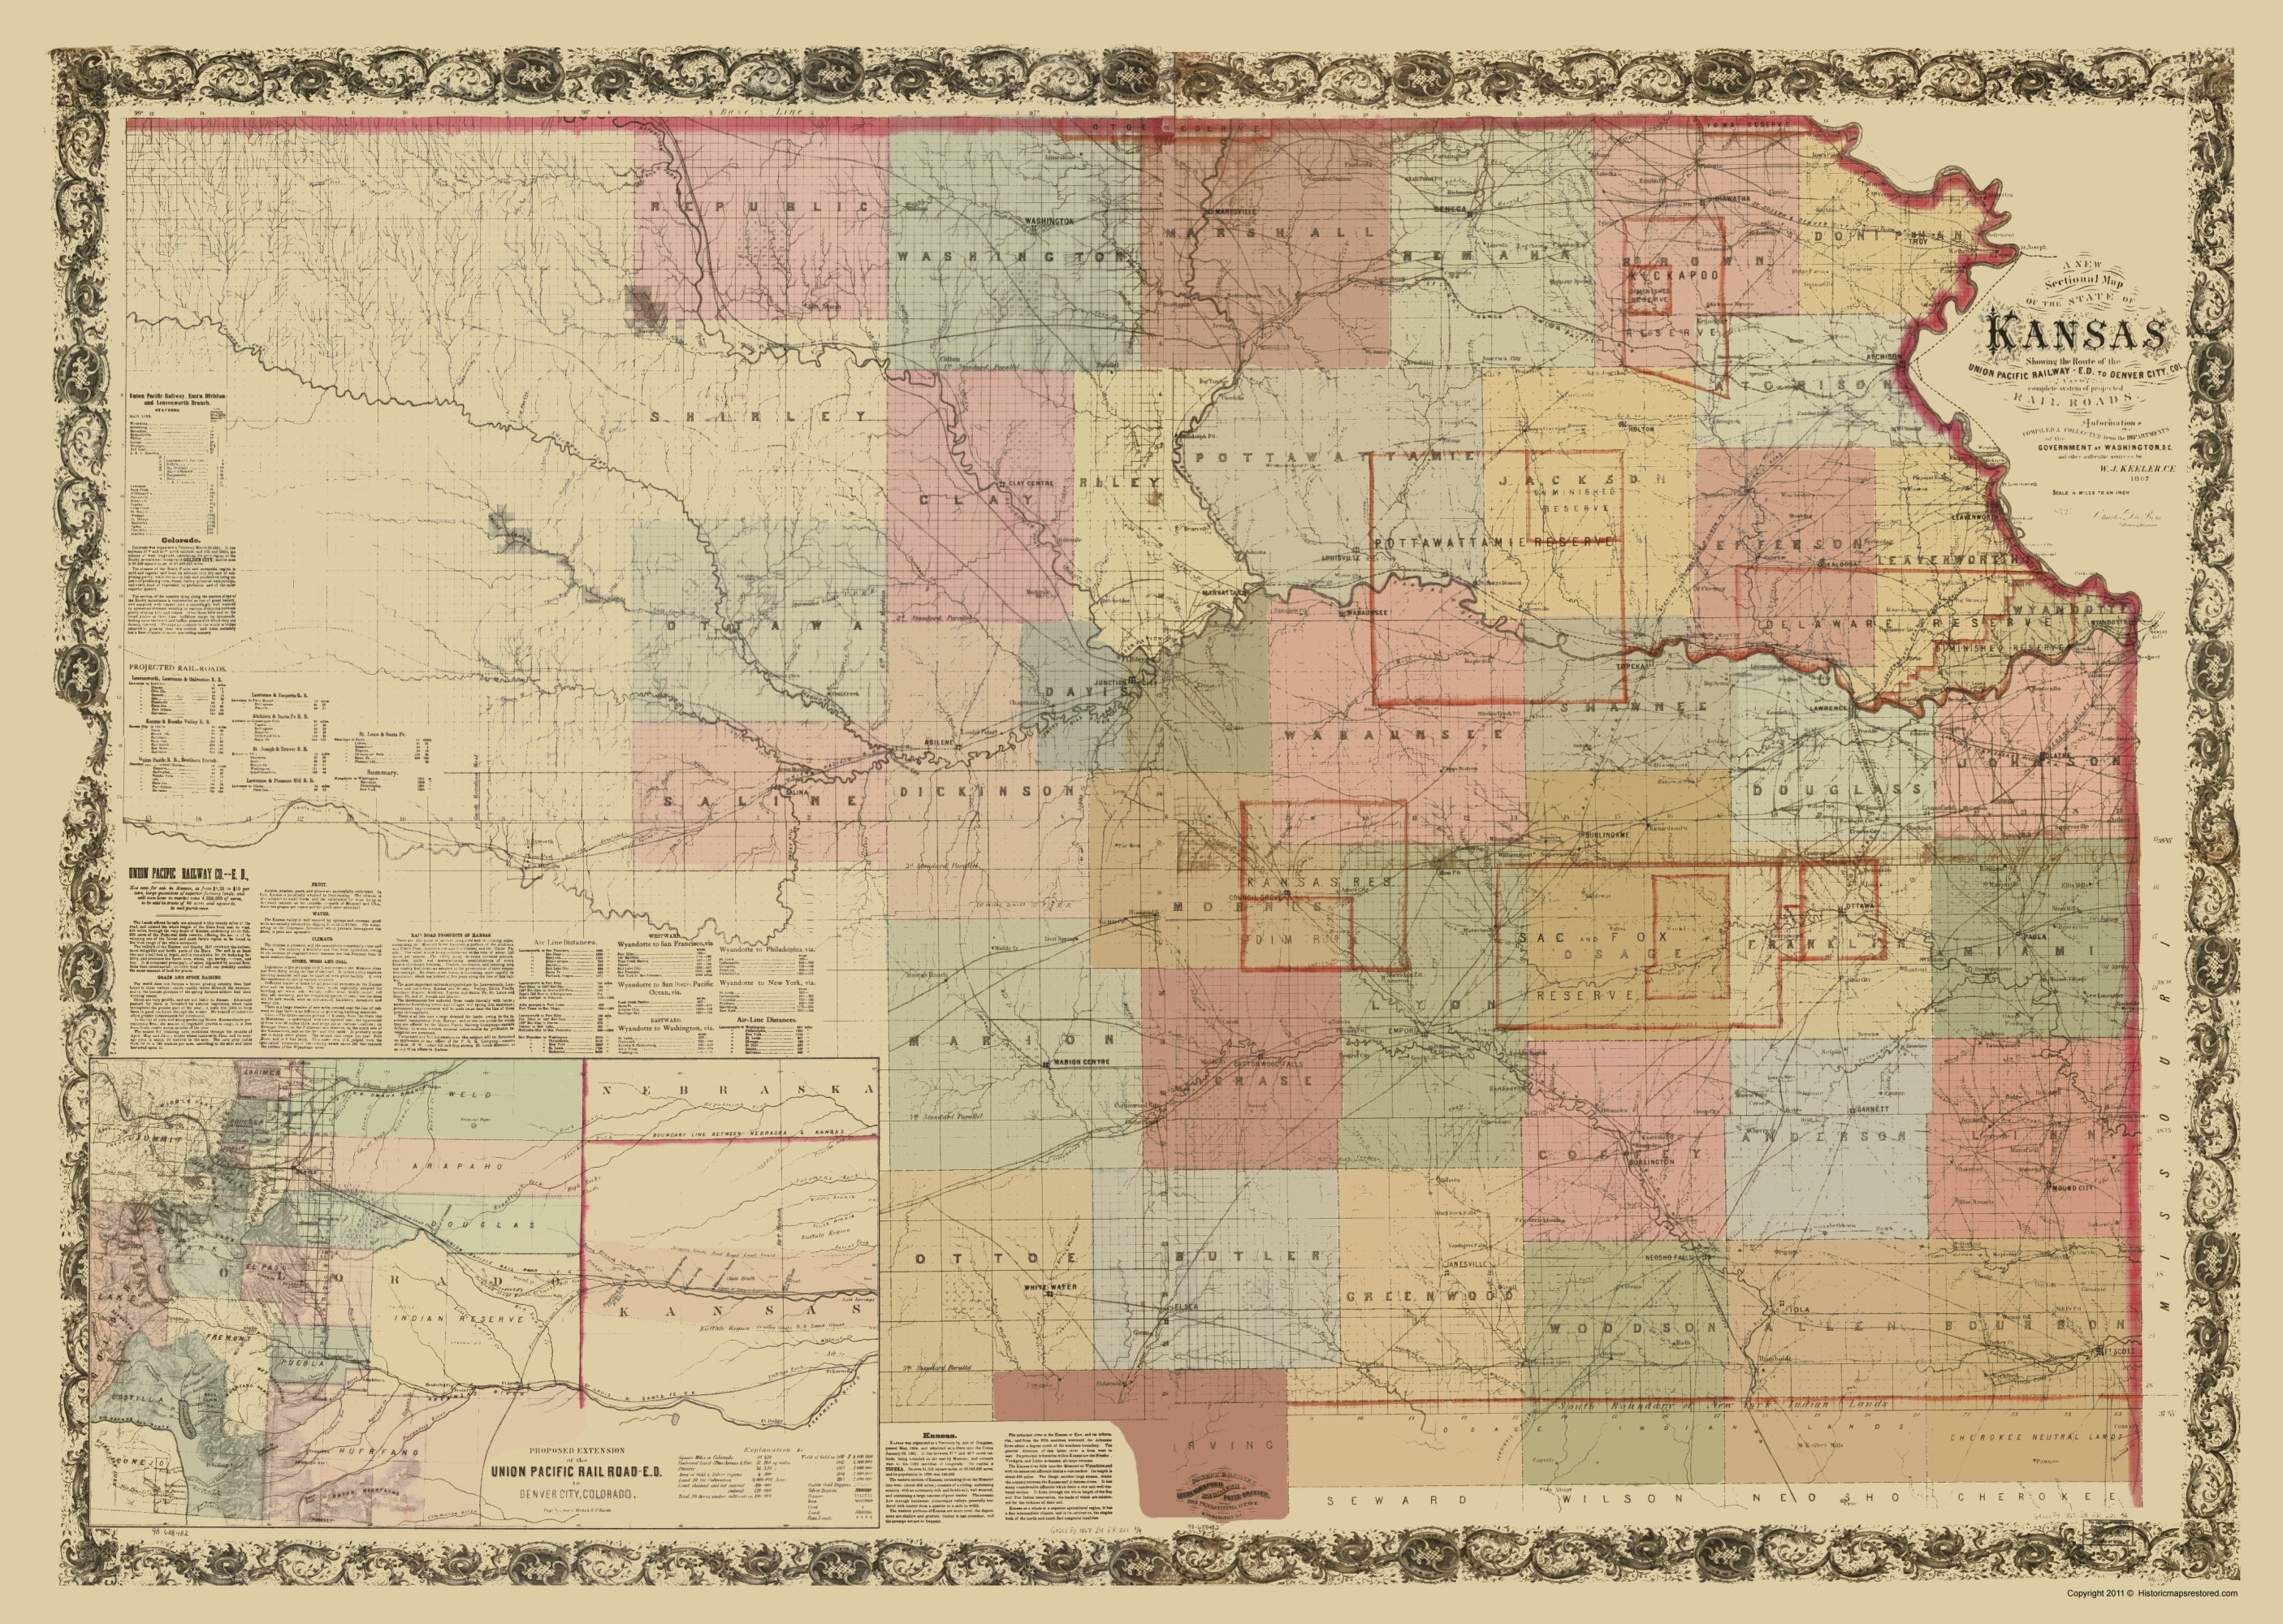 Old Kansas Map.Old Railroad Map Kansas Projected Railroads 1867